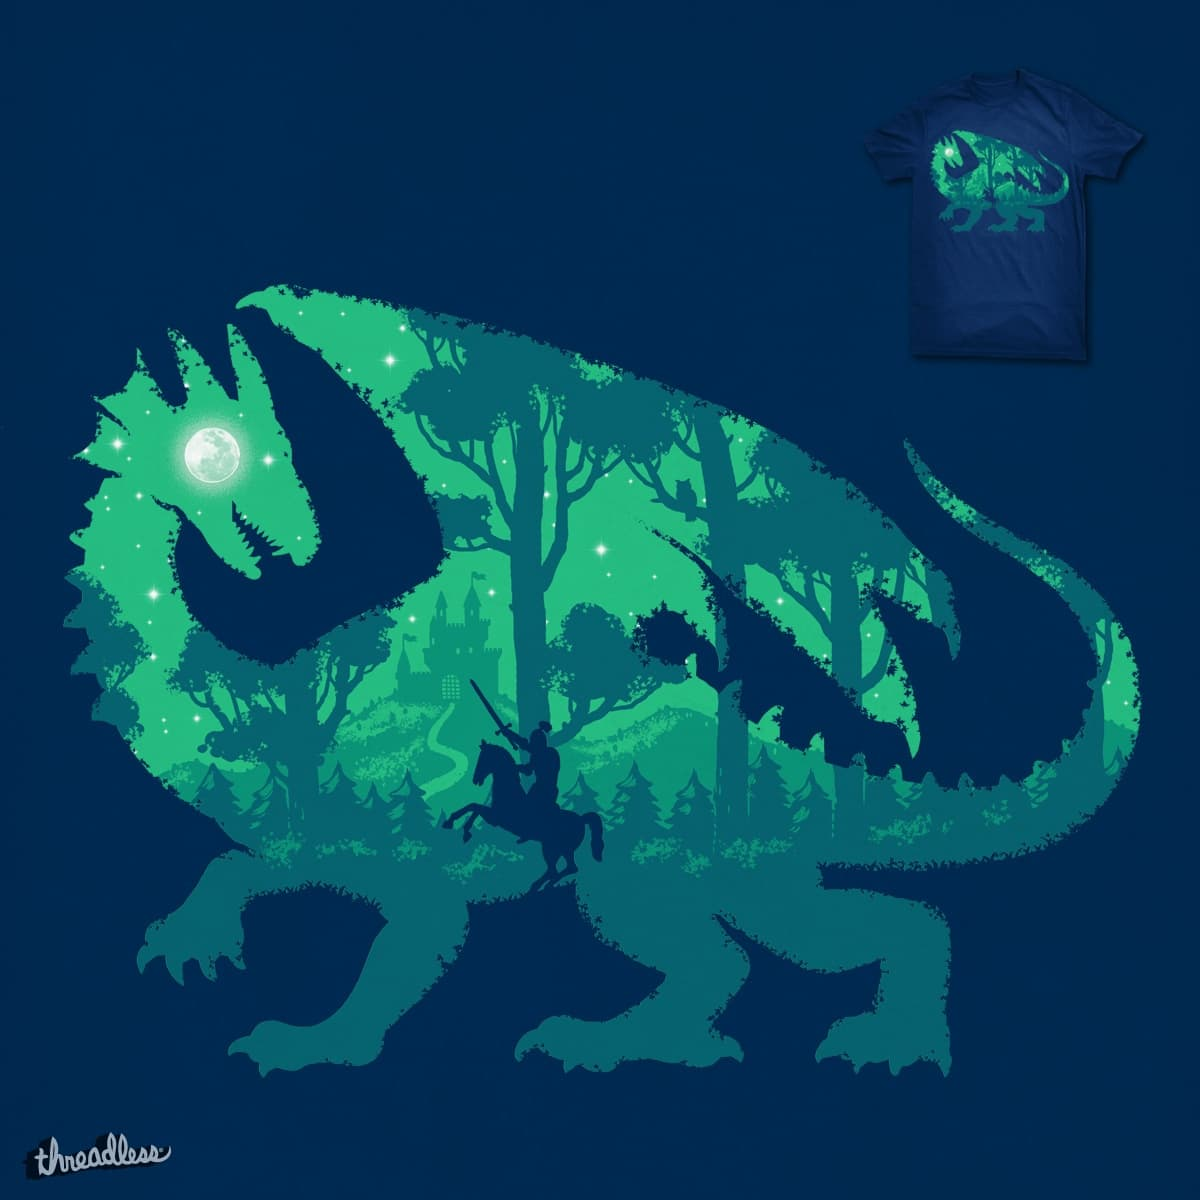 Night Dragonslayer by ben chen on Threadless